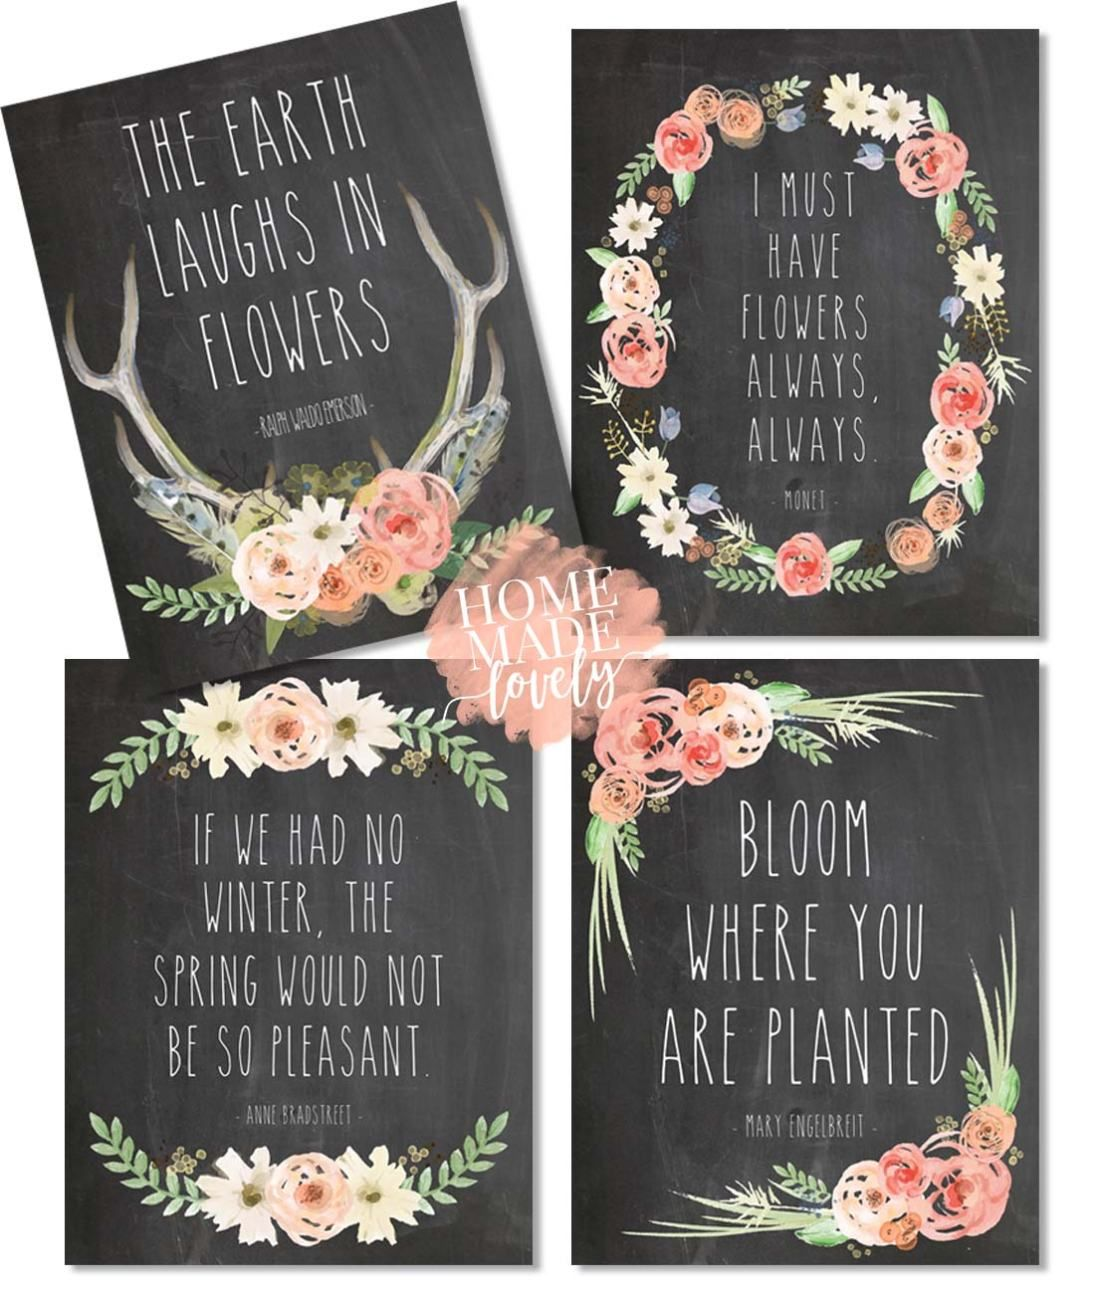 8 Brand New Free Spring Printables  Spring Quotes, Watercolors & Chalkboards is part of Spring printables free, Spring printables, Spring quotes, Free printable art, Free chalkboard printables, Free artwork - Please accept these 8 brand new free spring printables as our way of saying thank you for coming to Home Made Lovely again and again  We appreciate you, more than you know!